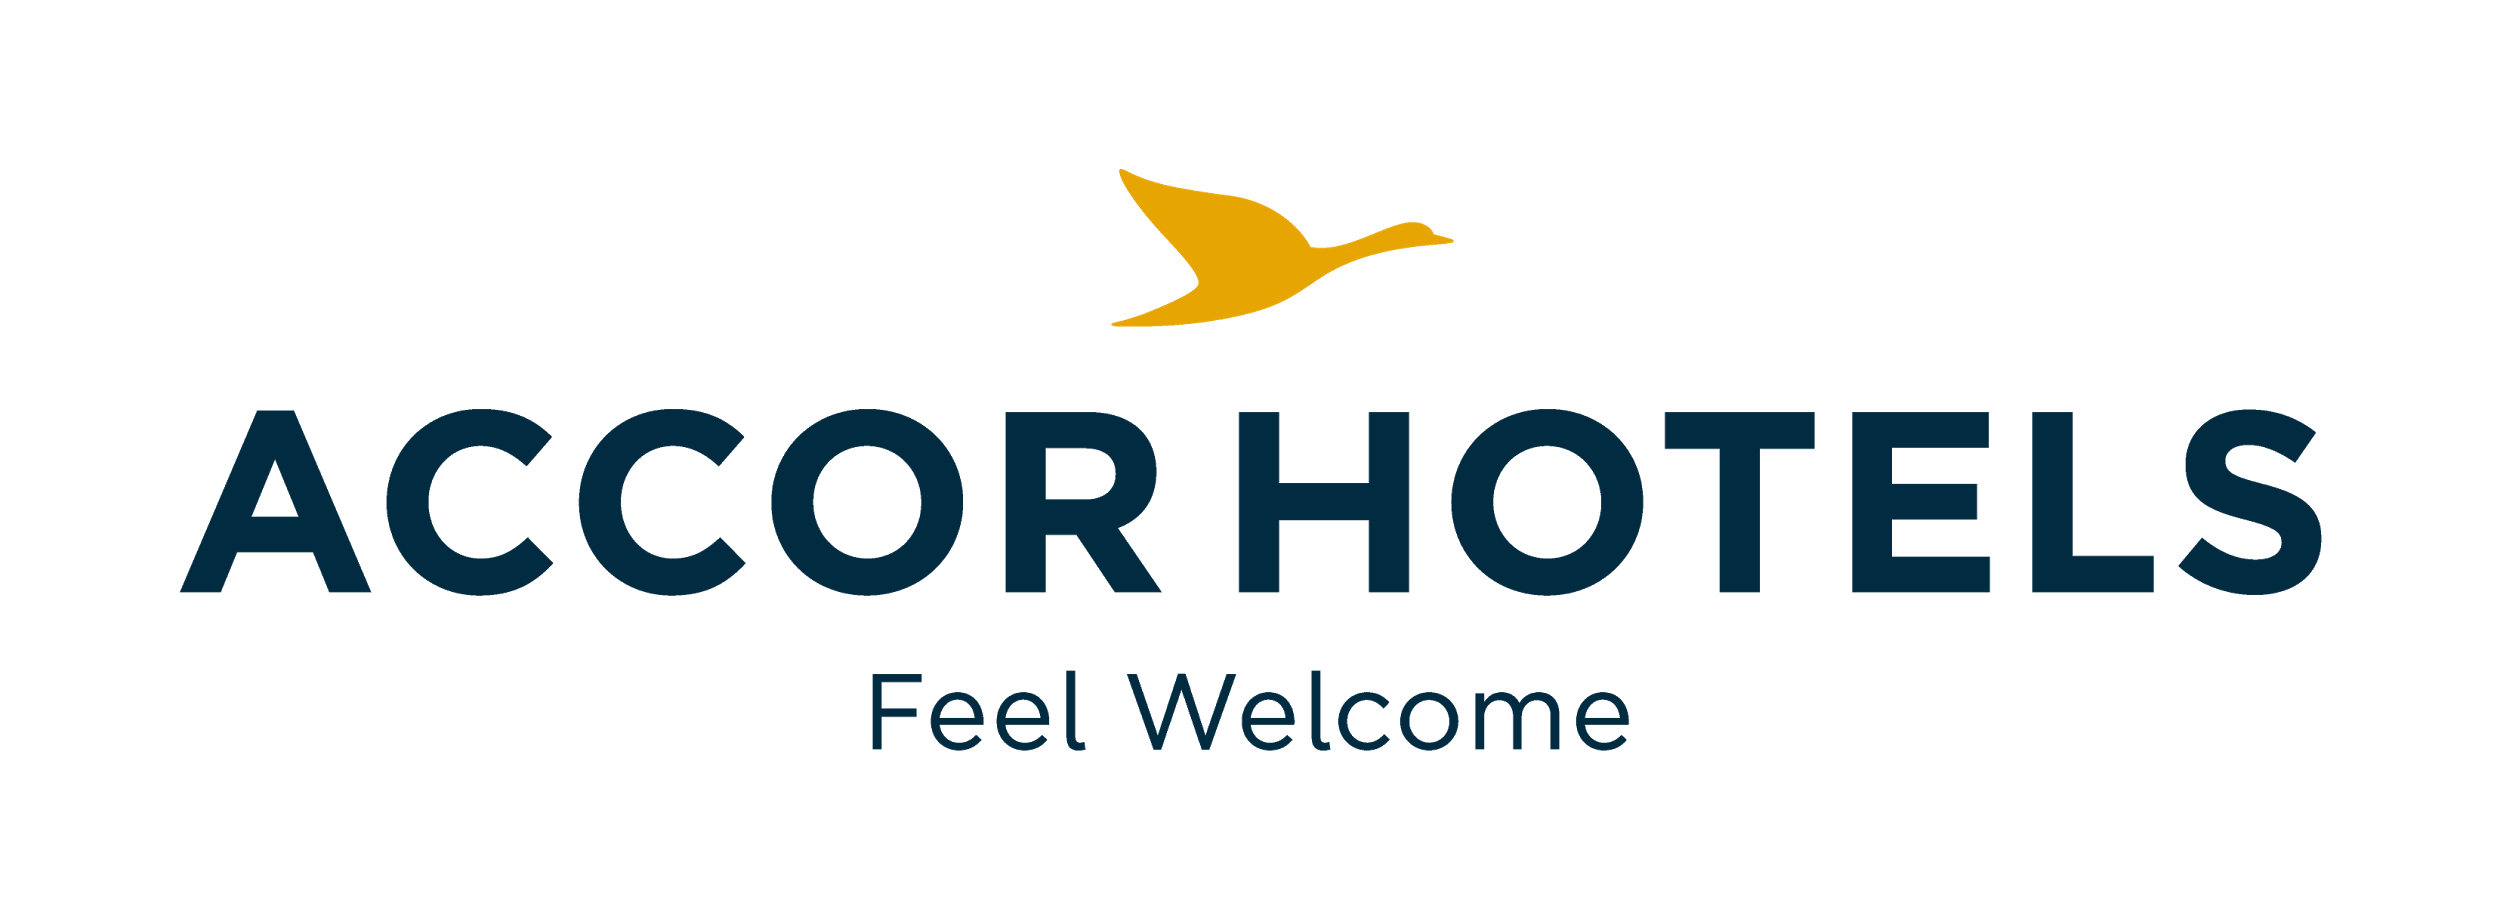 Accor Hotel logo